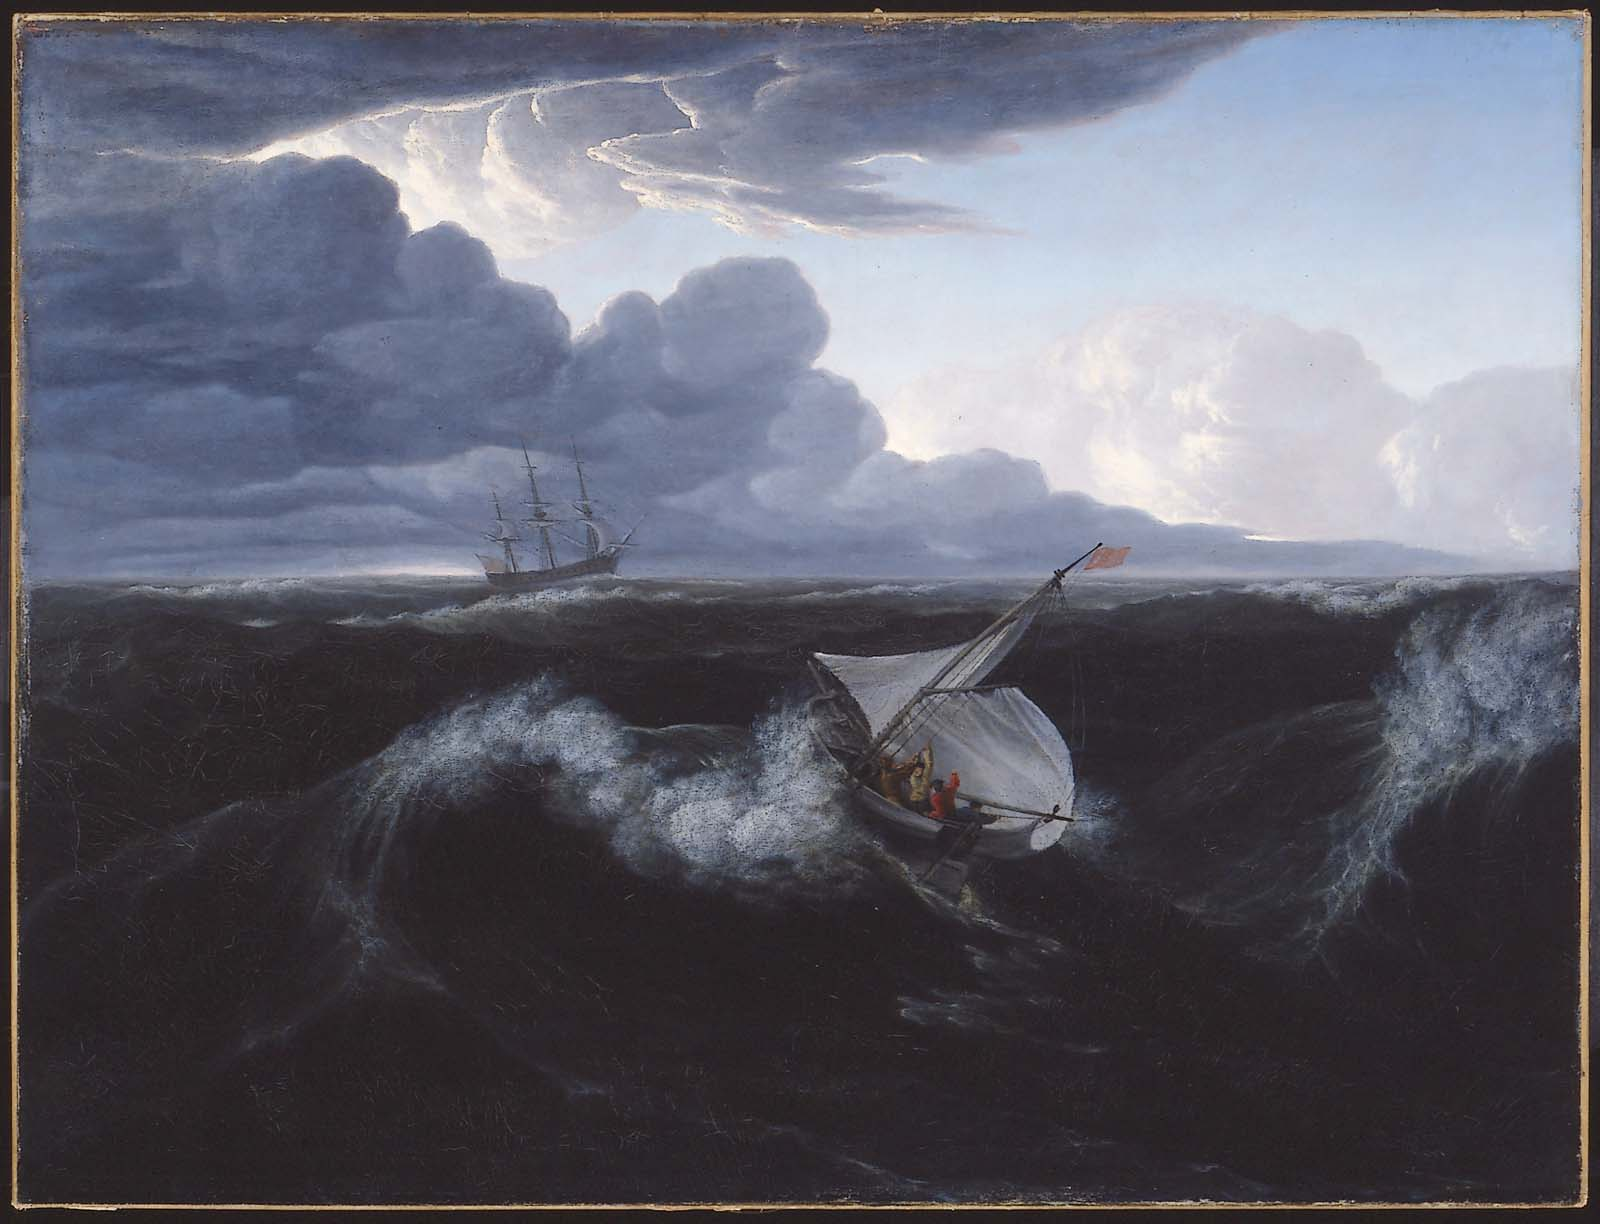 https://i1.wp.com/upload.wikimedia.org/wikipedia/commons/3/31/Storm_Rising_at_Sea.jpg